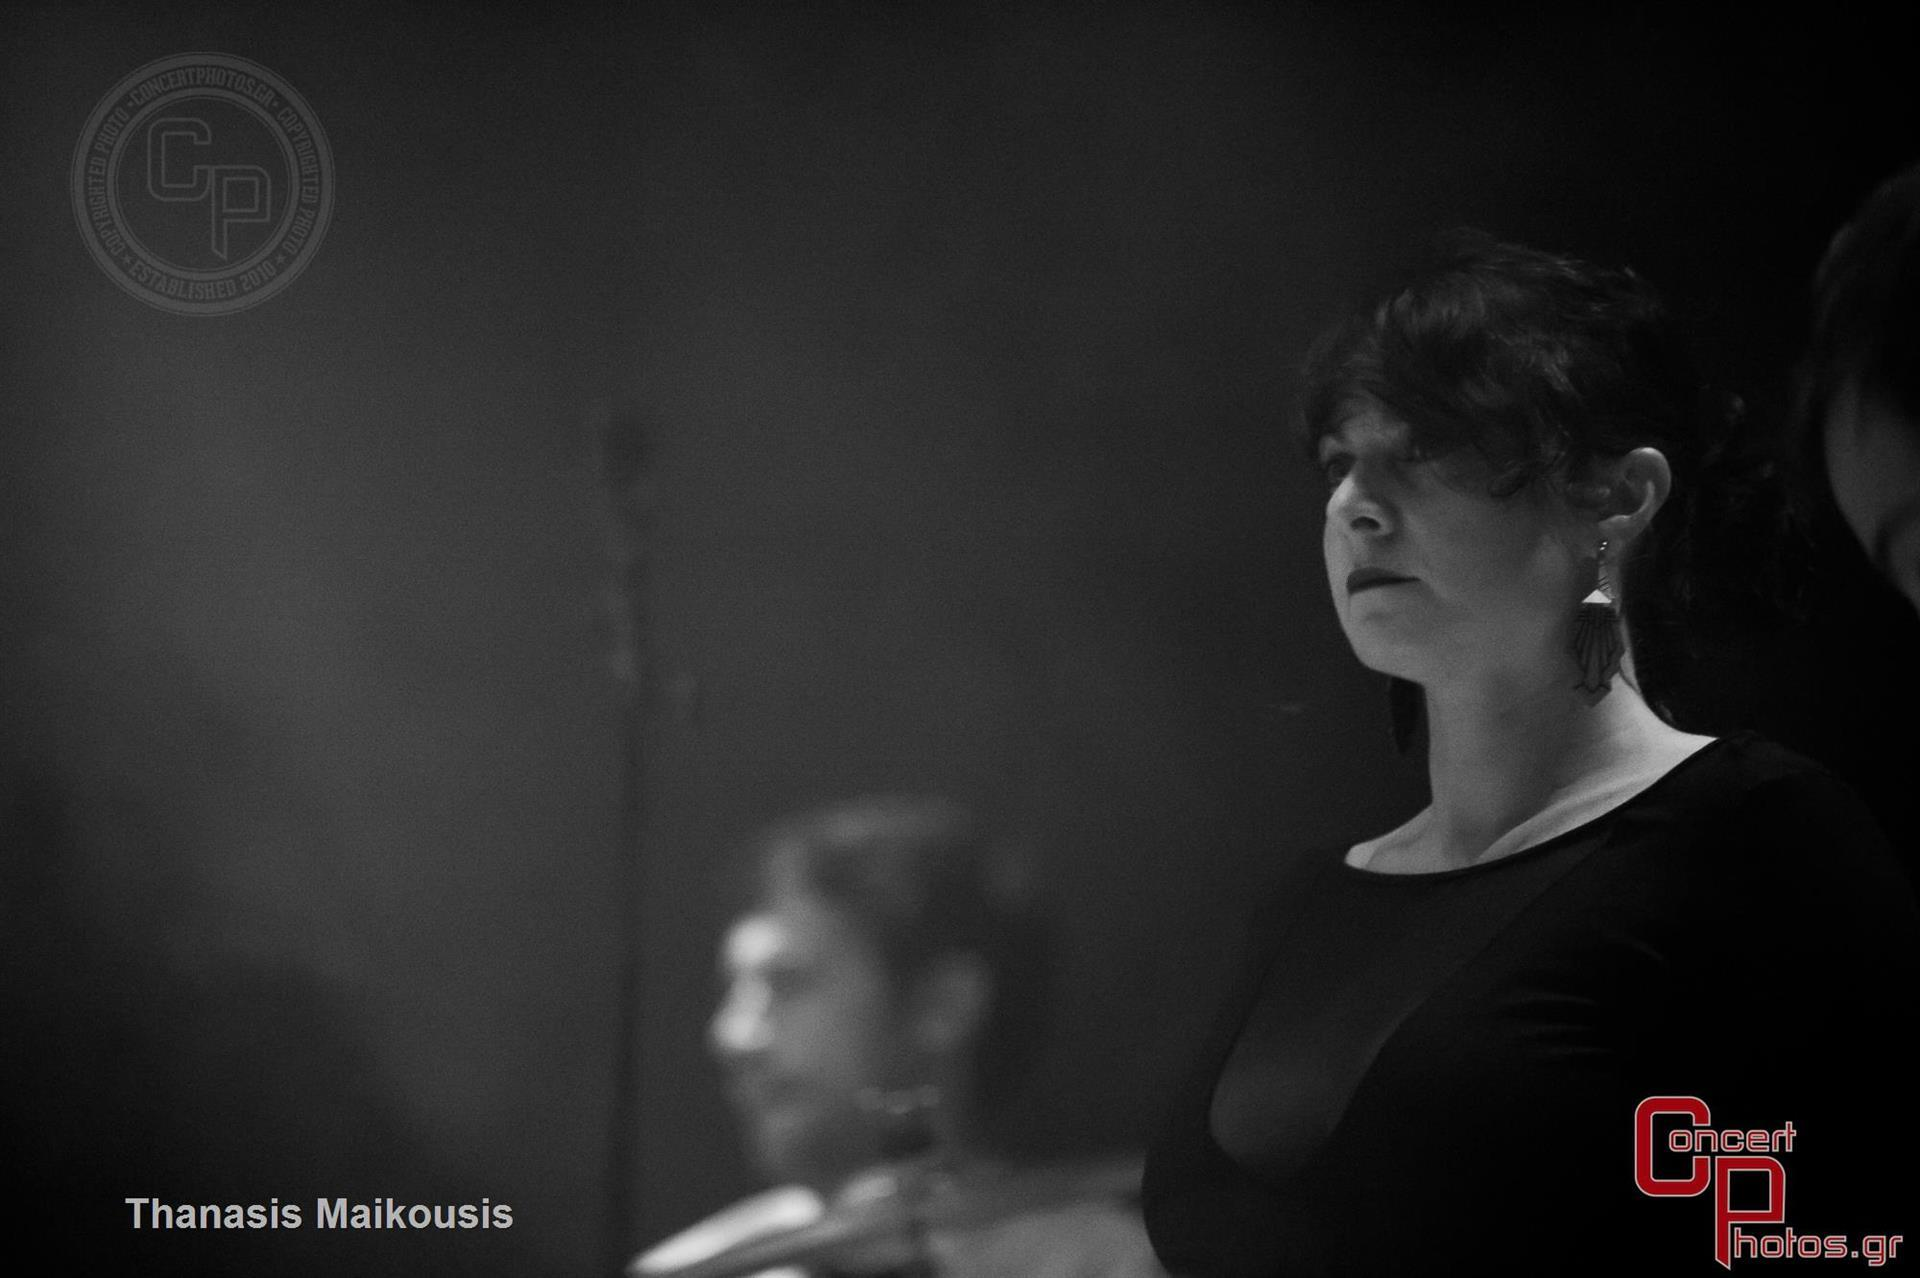 Nuvelle Vague -Nuvelle Vague Fuzz photographer: Thanasis Maikousis - ConcertPhotos - 20141225_0008_57